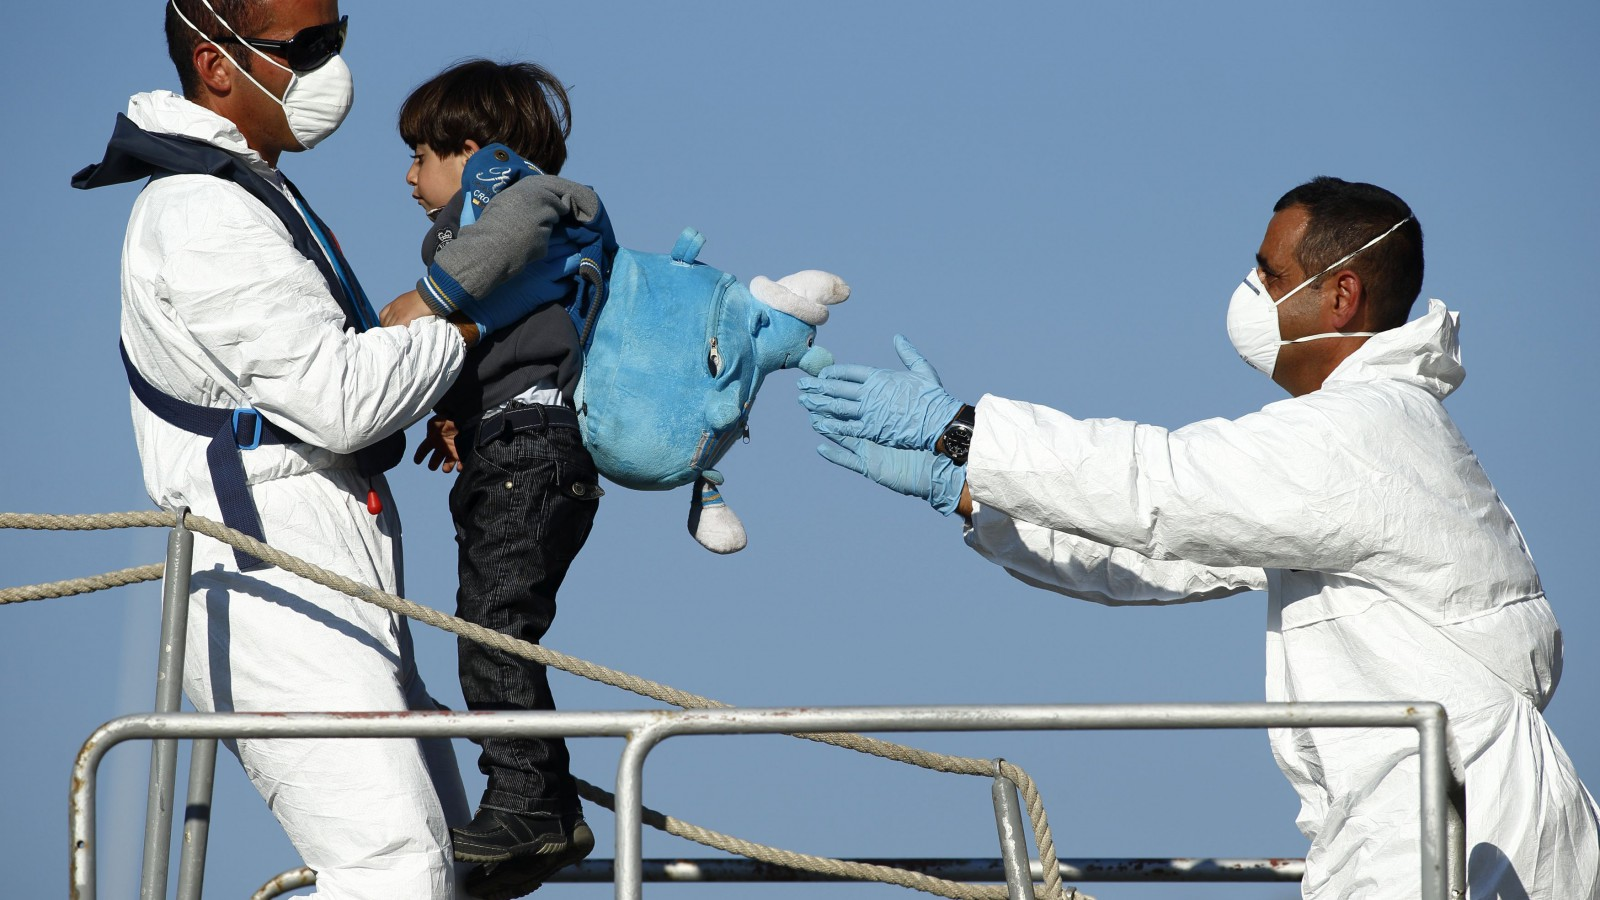 Armed Forces of Malta (AFM) sailors disembark a would-be immigrant child.